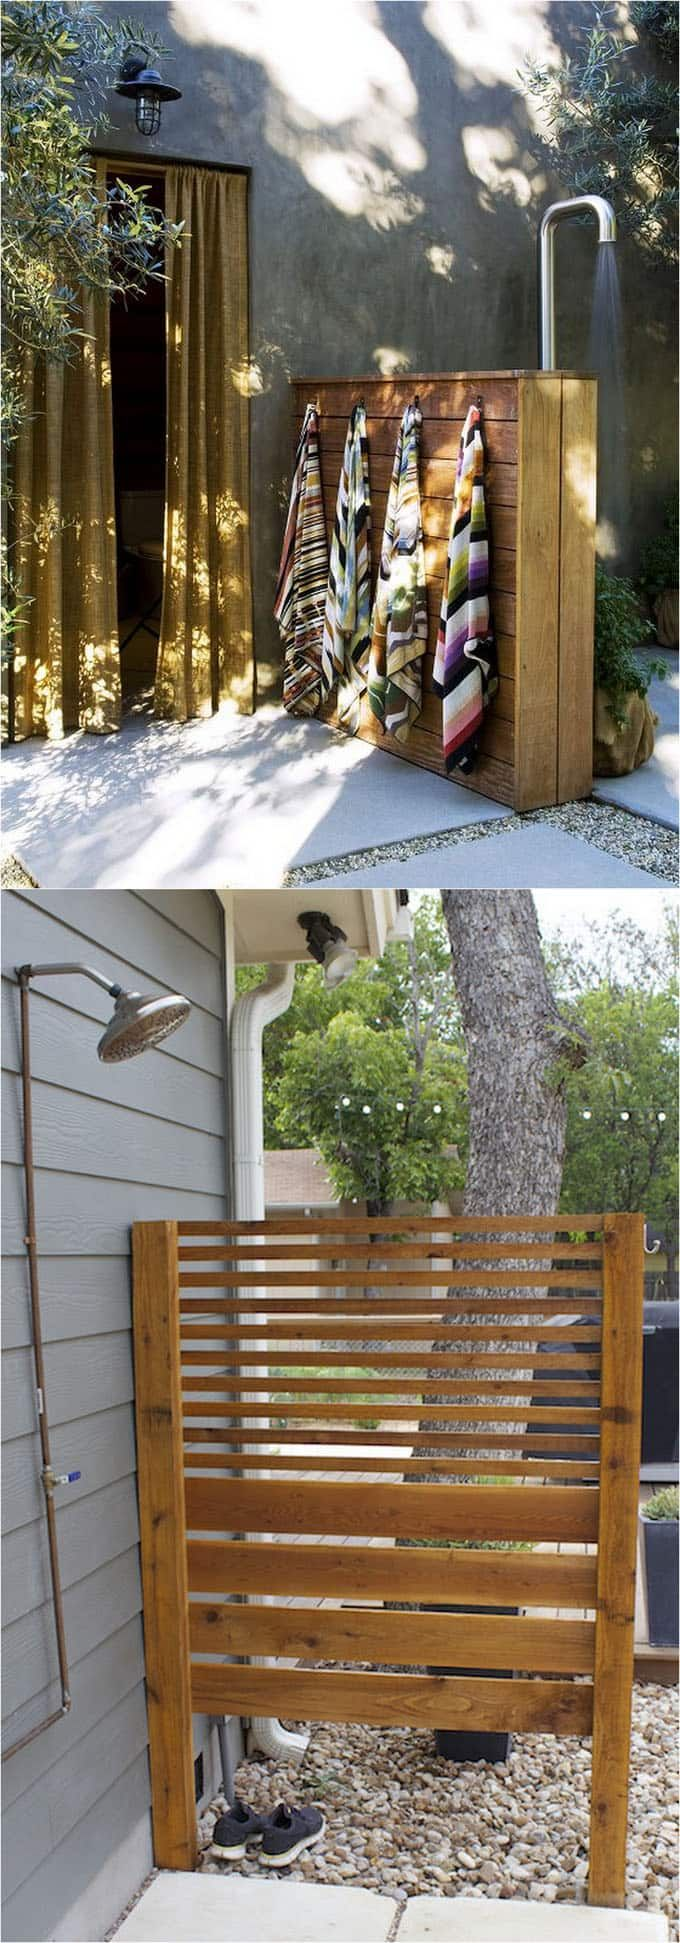 Simple Outdoor Number Activities For Kids: 32 Inspiring DIY Outdoor Showers: Lots Of Ideas On How To